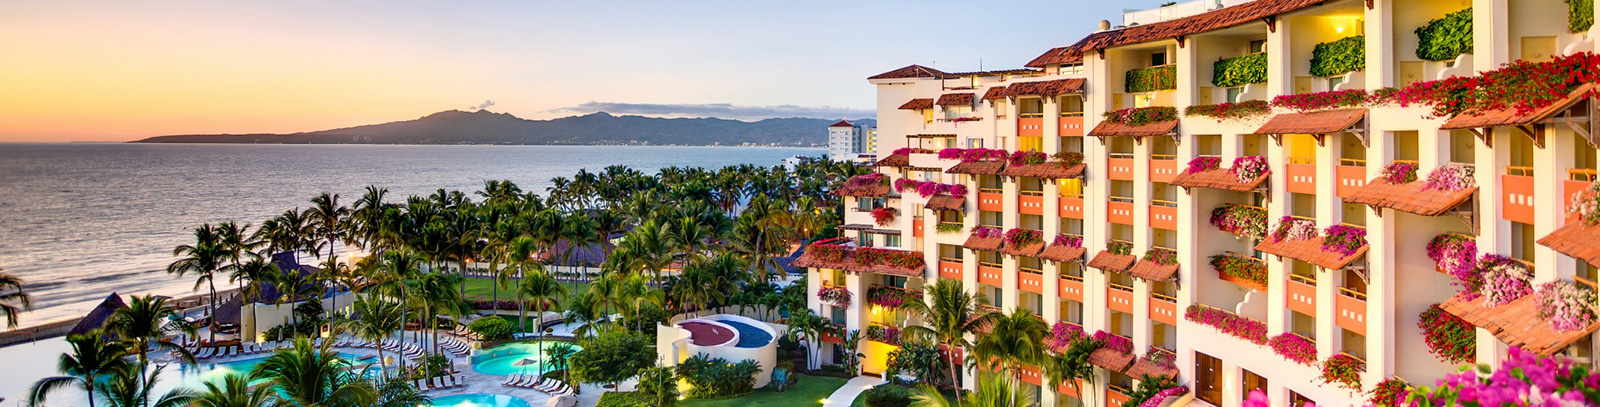 Location of Grand Velas Riviera Nayarit, Mexico